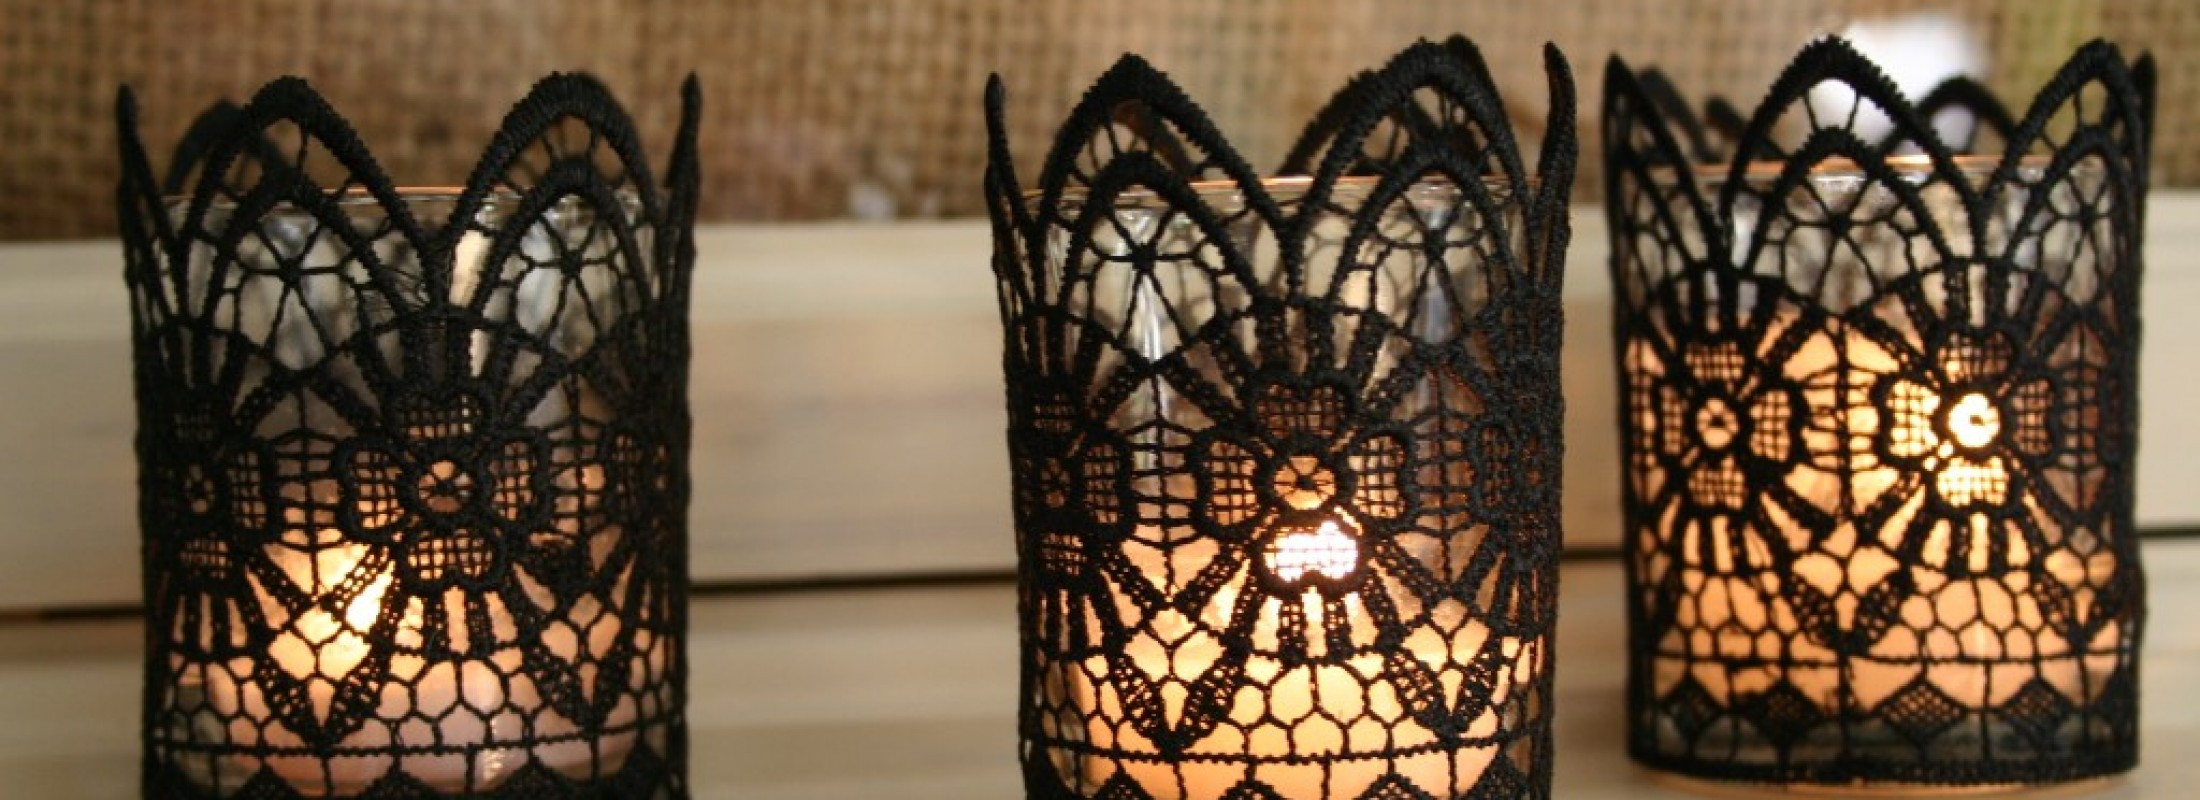 Black lace candles for Halloween